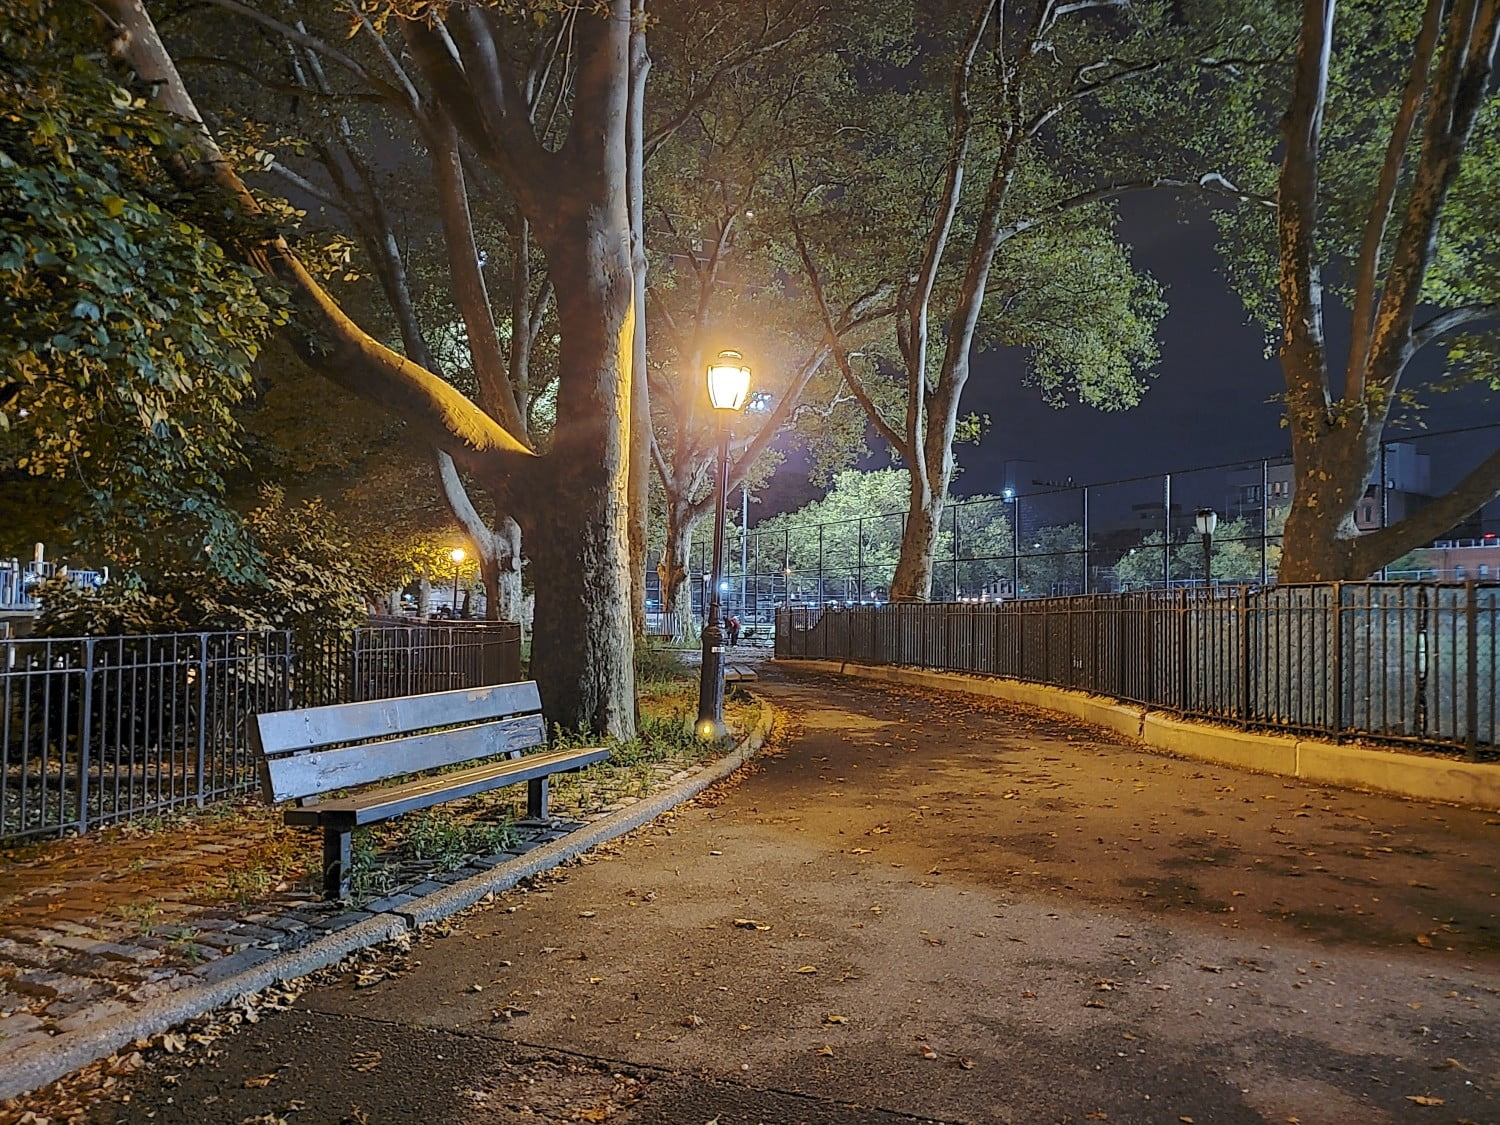 samsung galaxy note 10 plus review camera sample 20